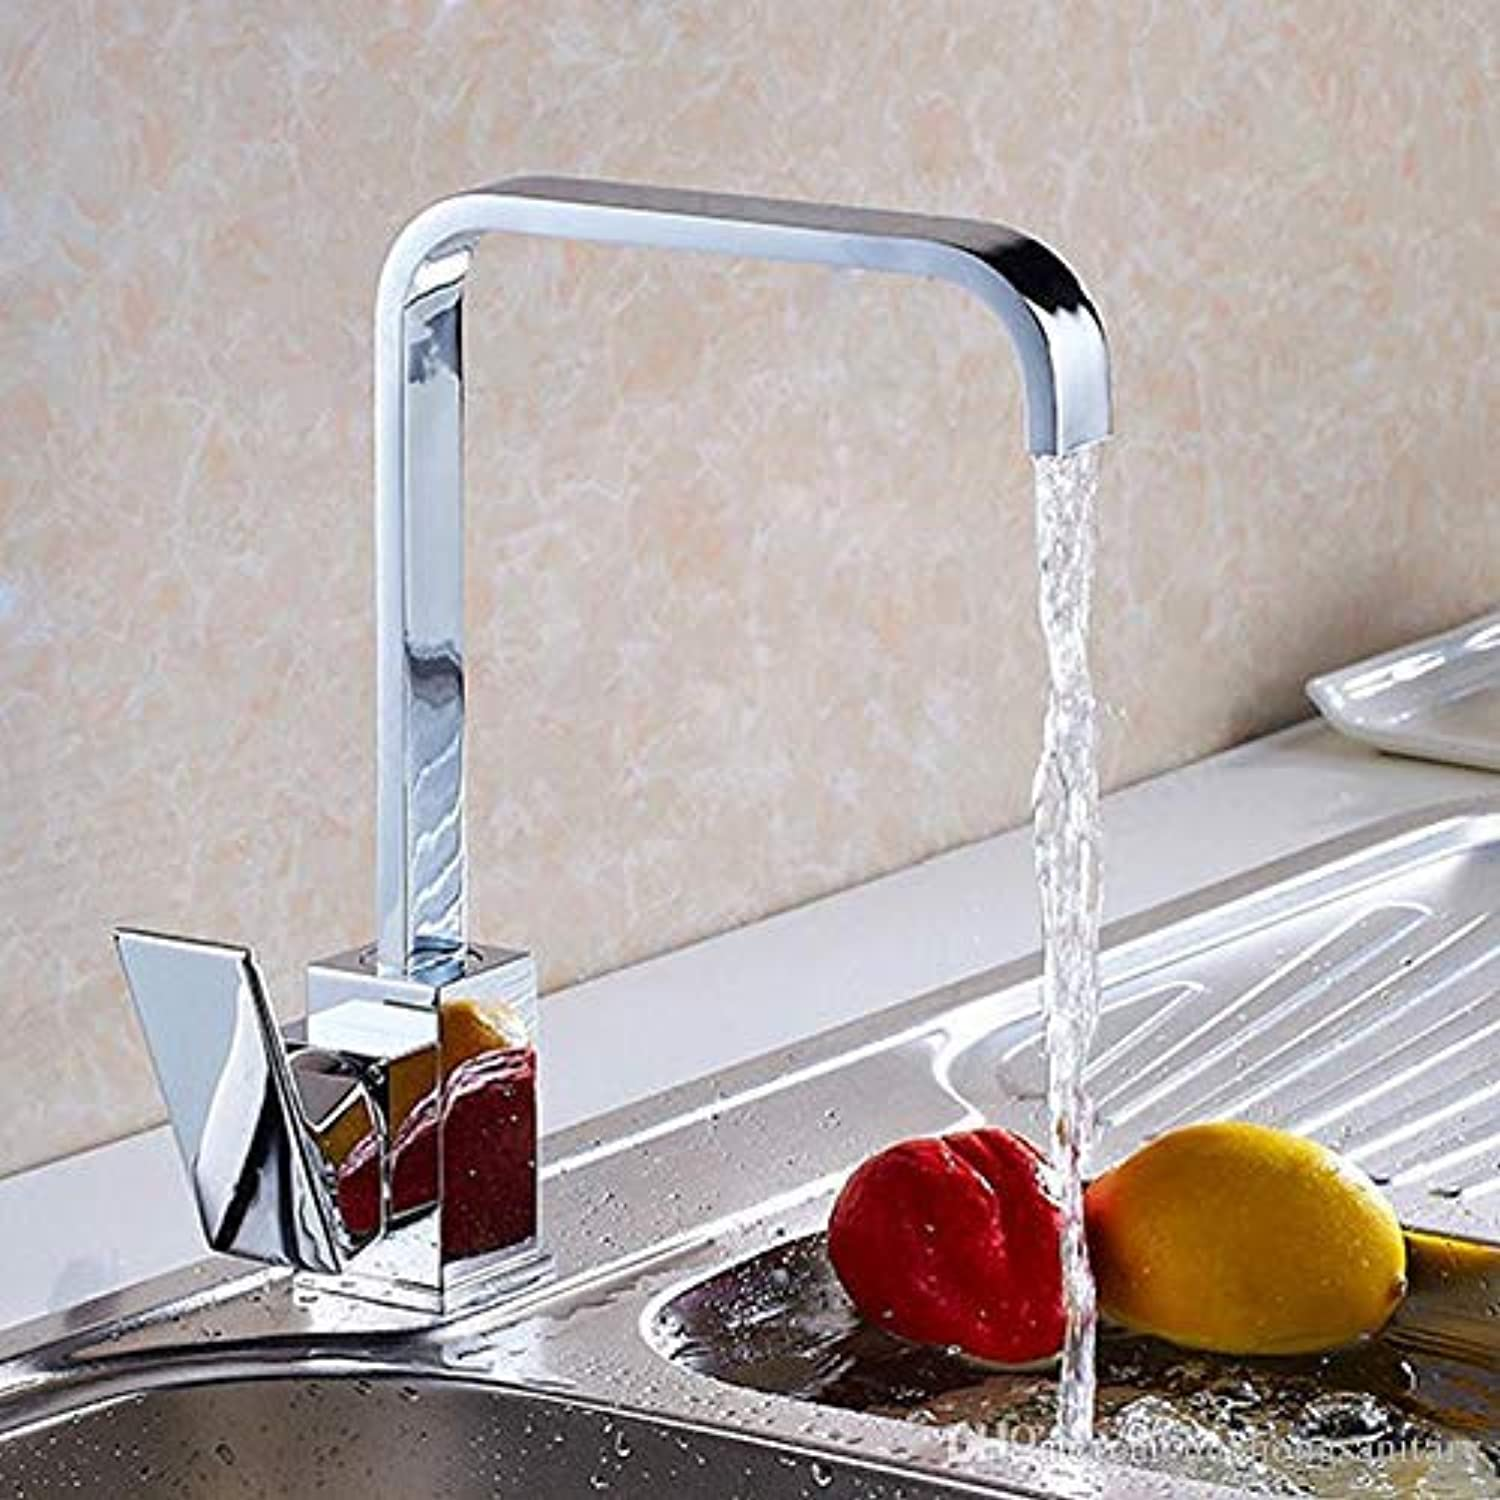 Oudan Contemporary Chrome Brass Waterfall Sinks Faucet Brass Chrome with Single Handle Hole Kitchen Faucets Hs417 (color   -, Size   -)